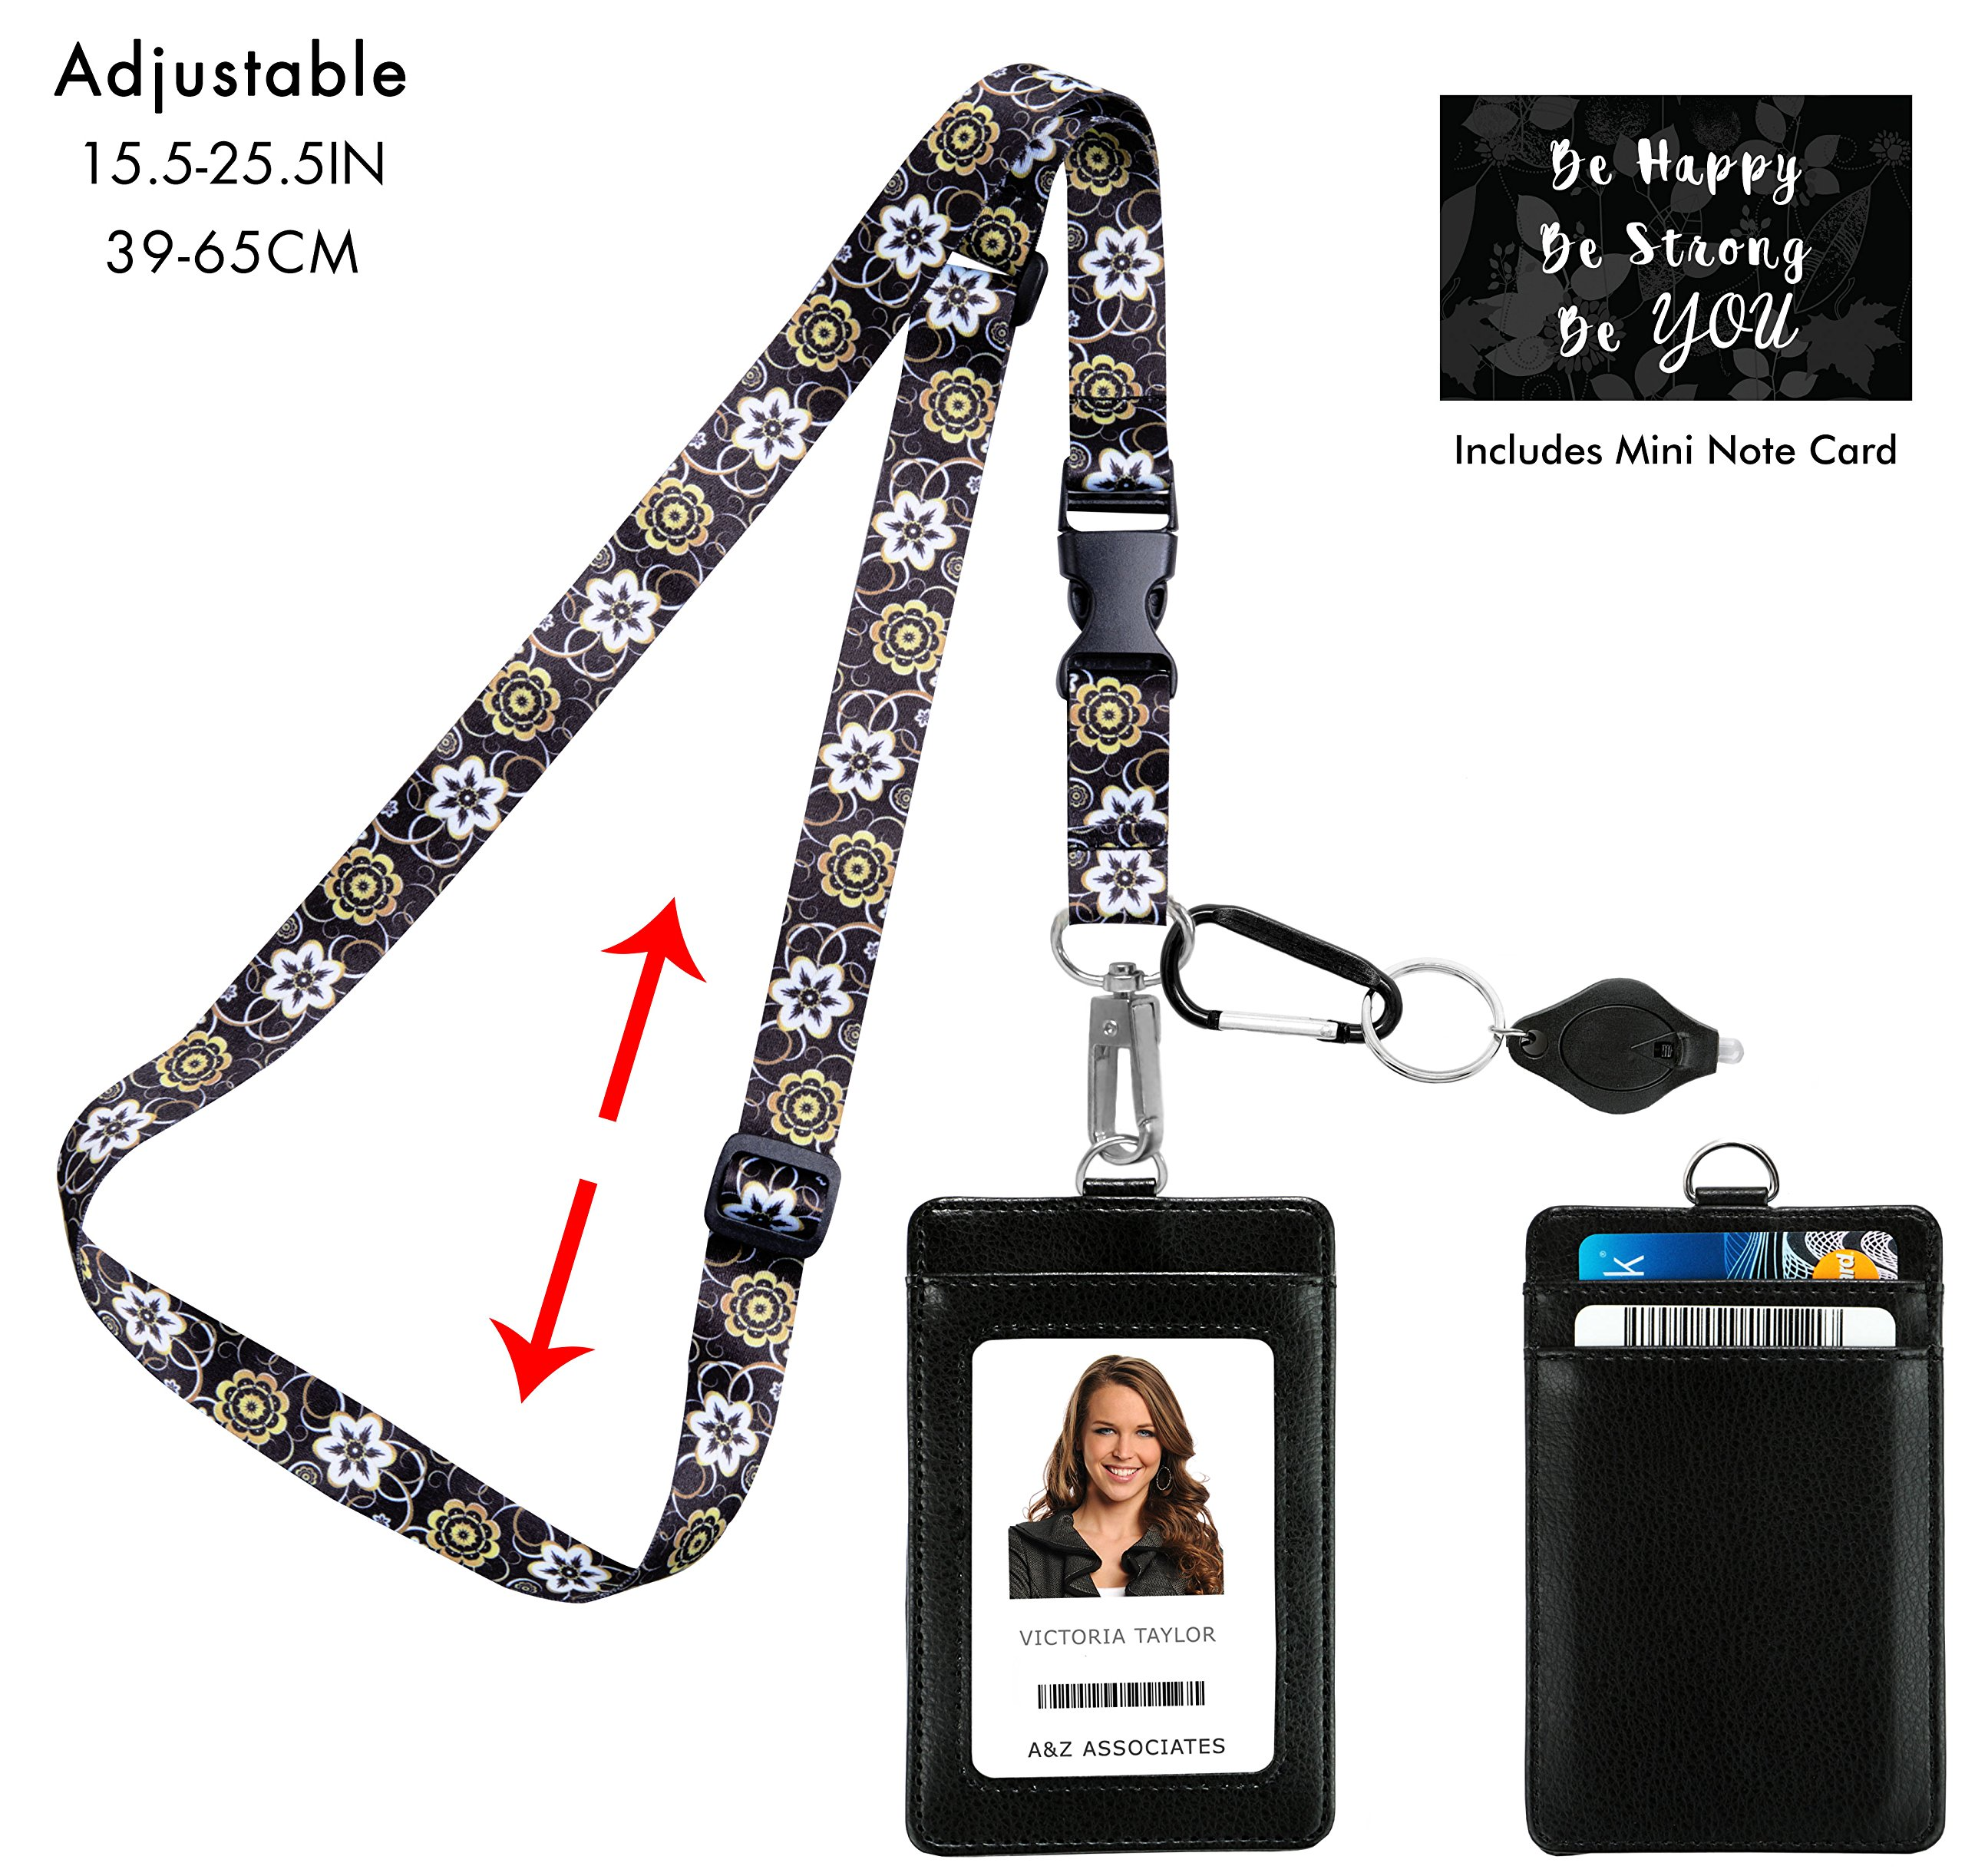 Abstract Gold and Black Adjustable Lanyard with PU Leather ID Badge Holder. 3 Card Pockets. Note Card. Carabiner Keychain Flashlight. Adjustable 15.5''-25.5''(39-65CM)